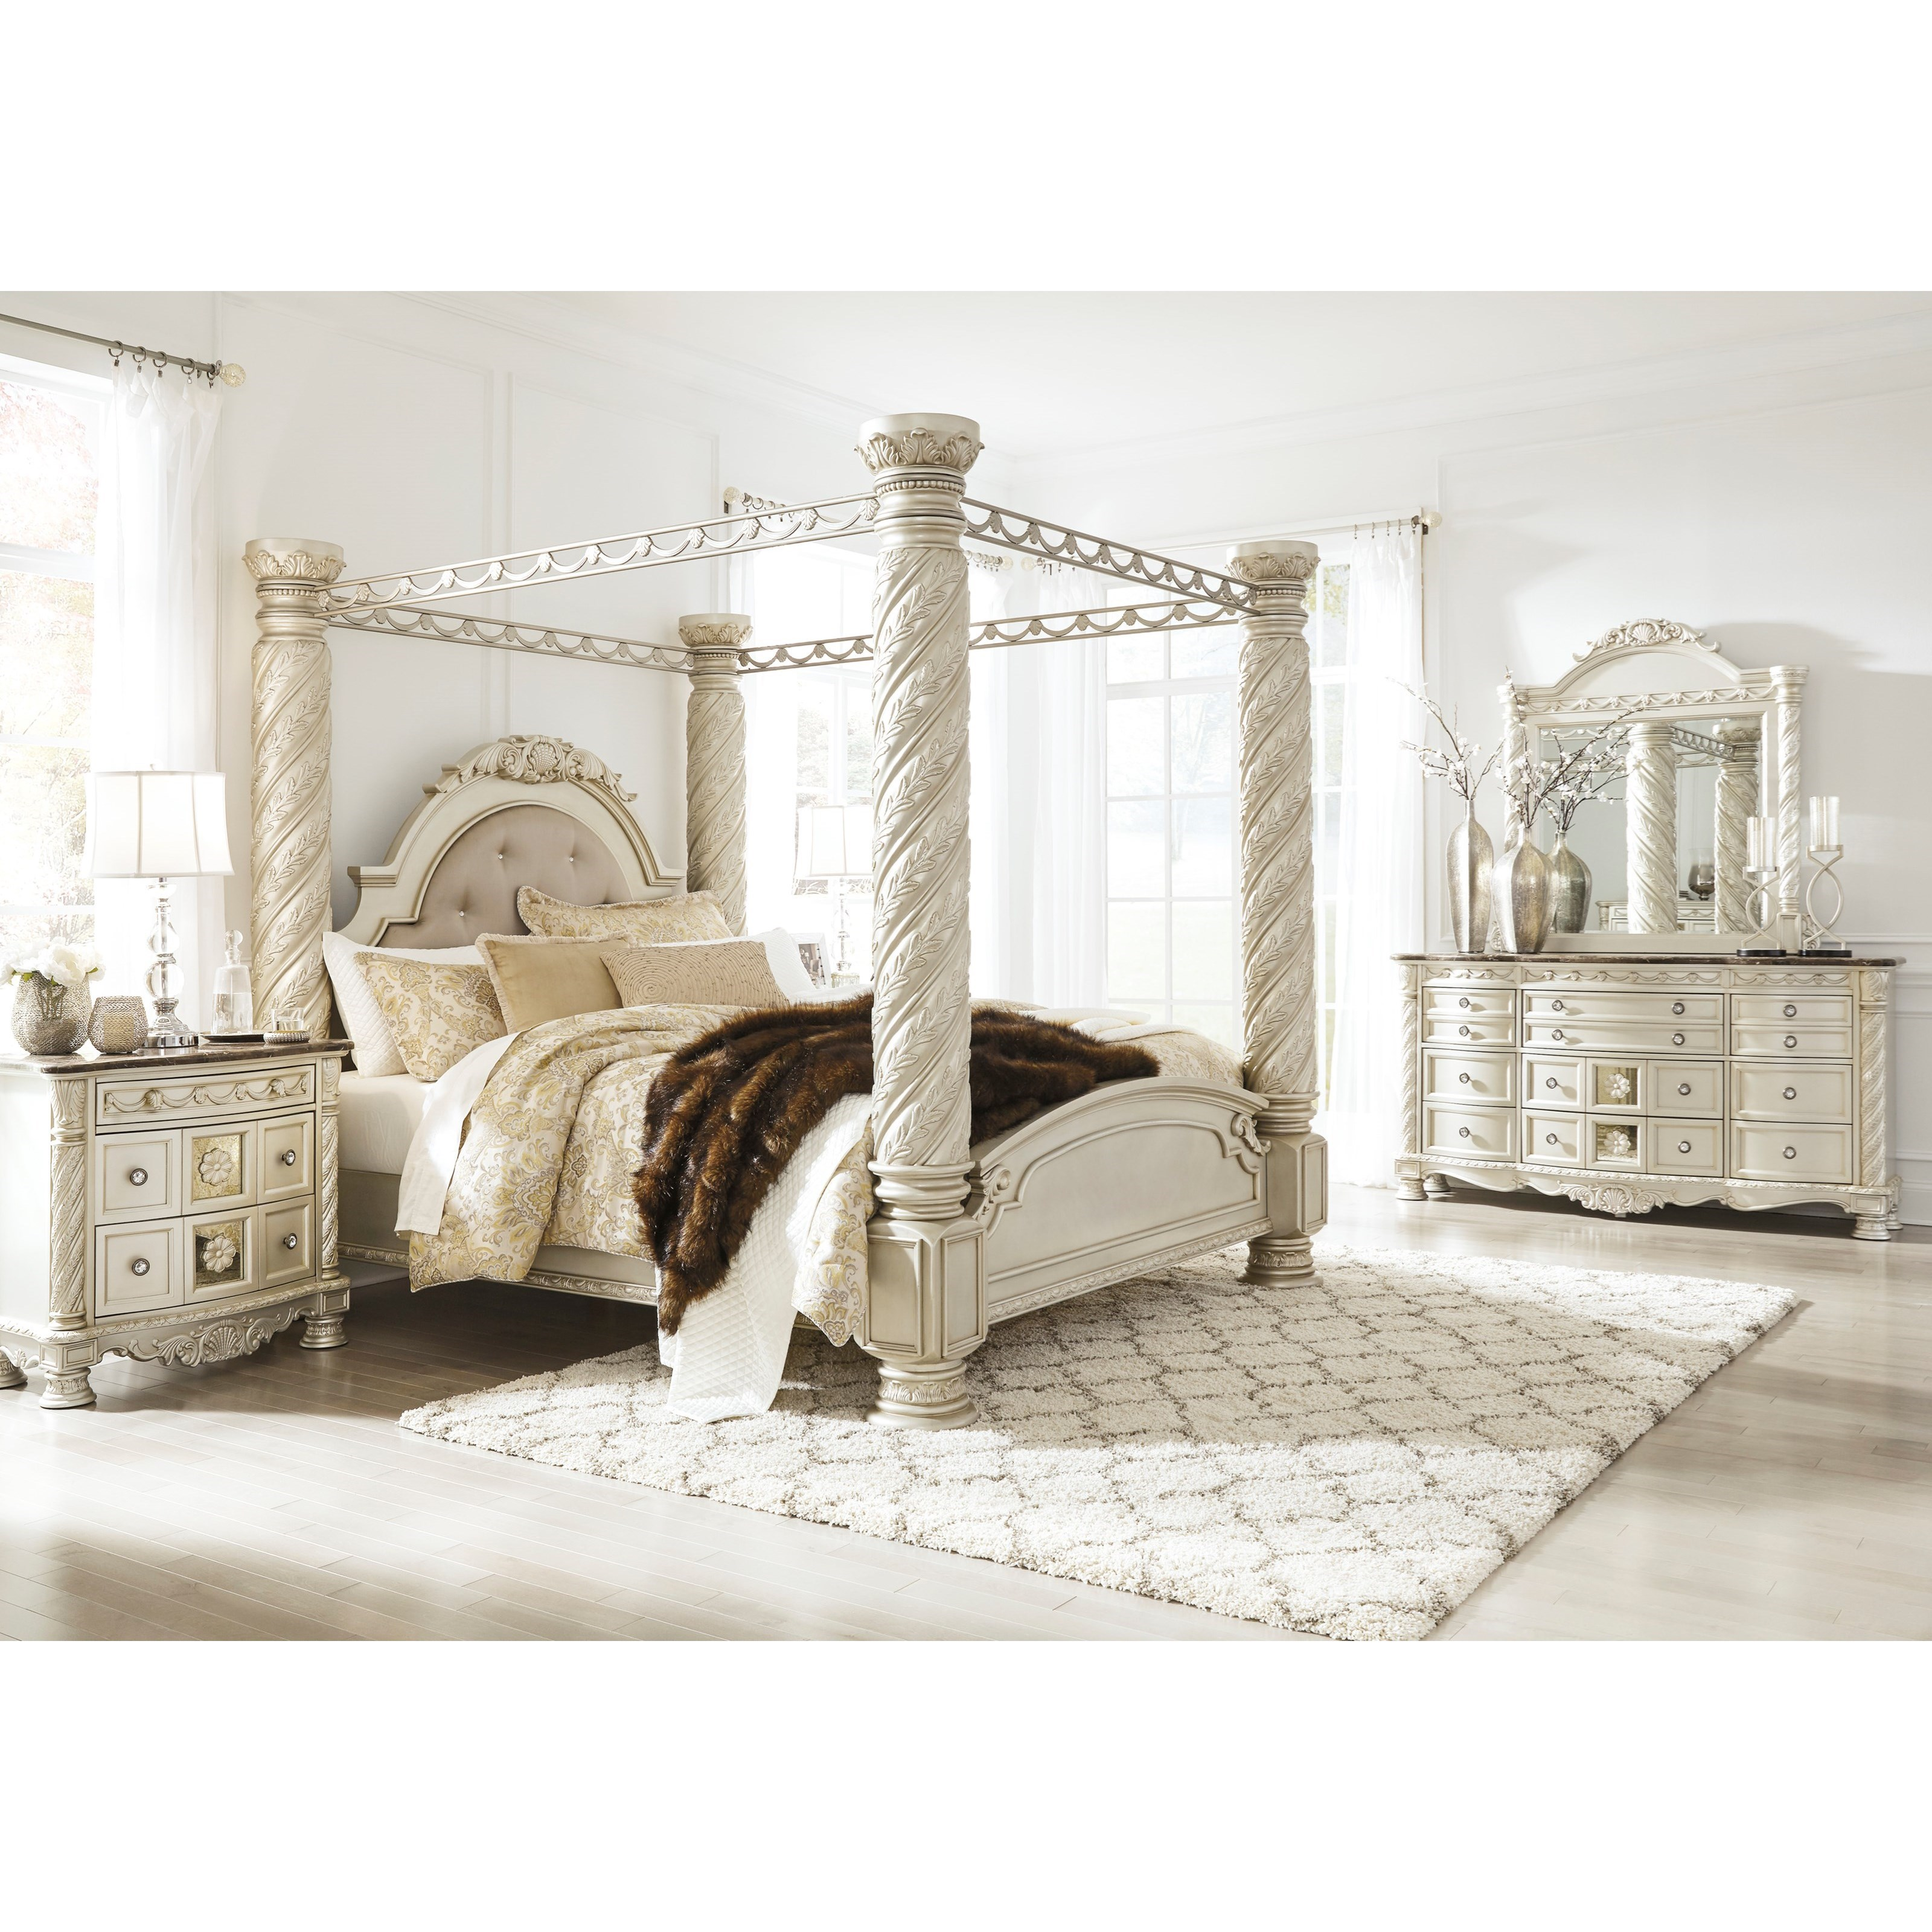 Signature Design By Ashley Cassimore King Bedroom Group Royal Furniture Bedroom Groups